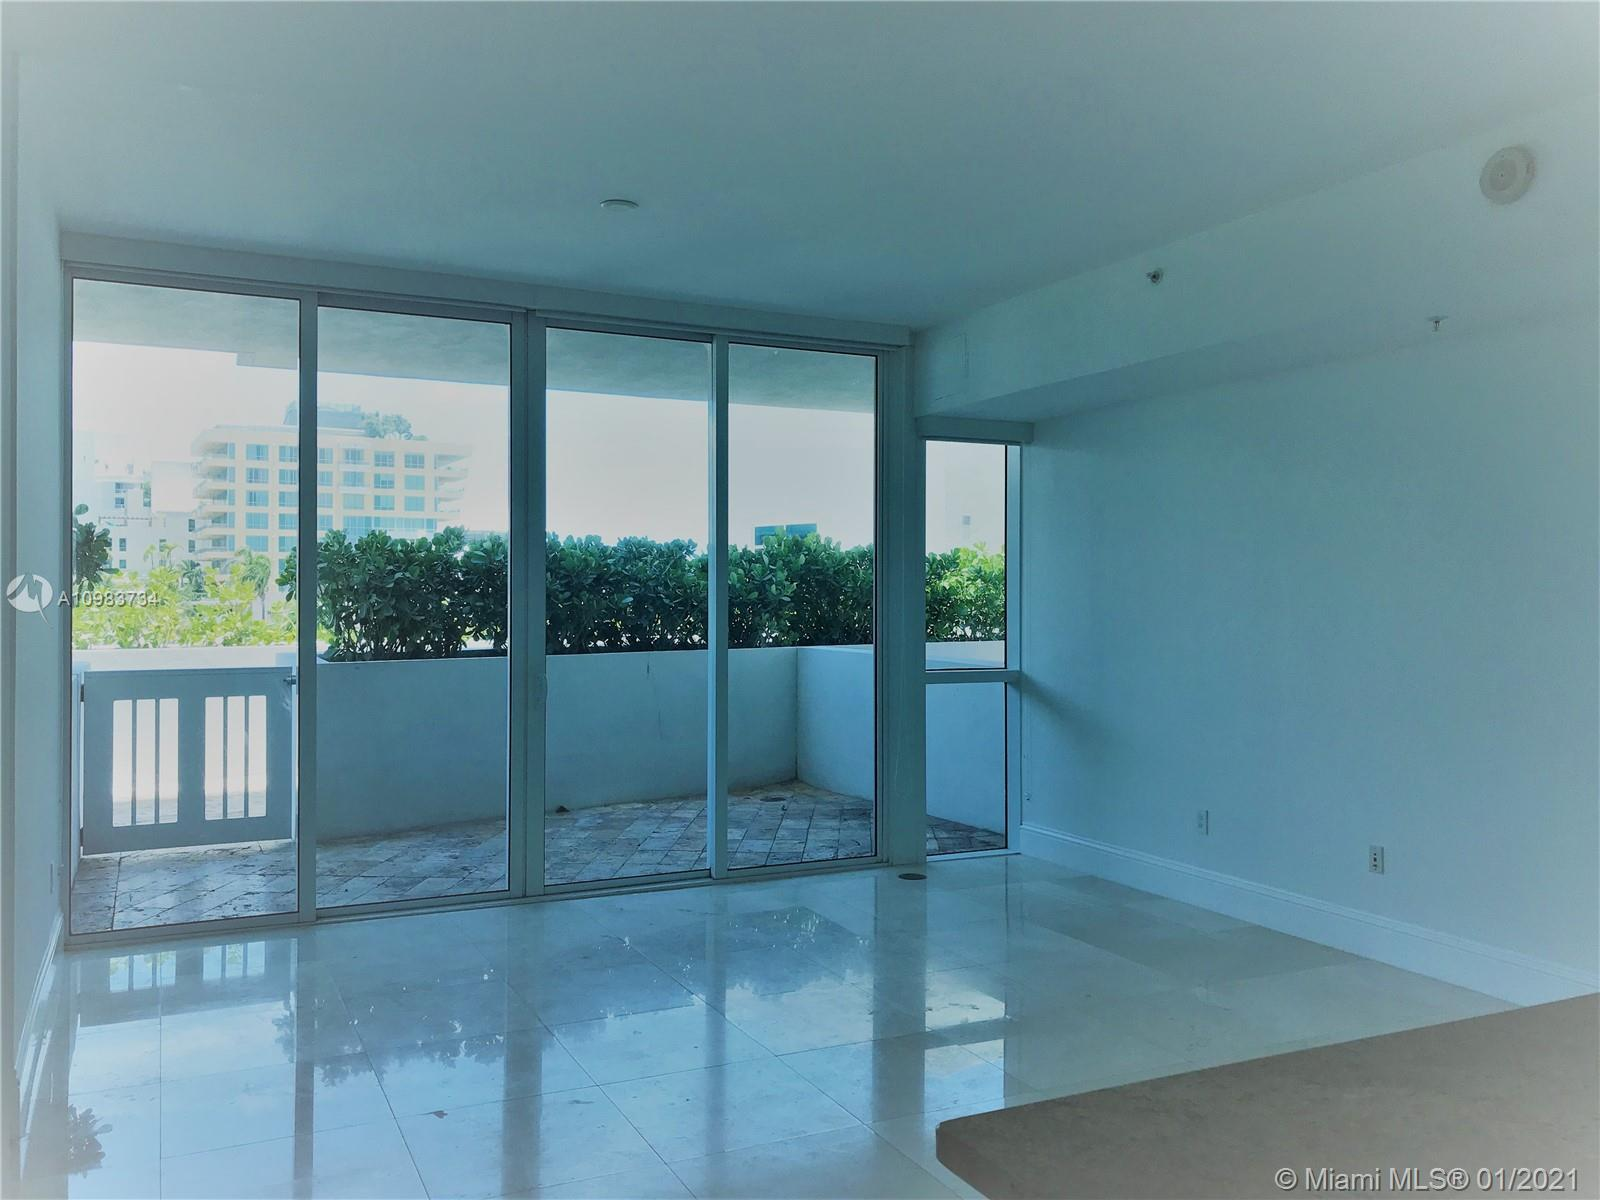 Enjoy 12 Acres of Oceanfront 5-Star Living at Continuum on South Beach! Spacious Studio, or can be c